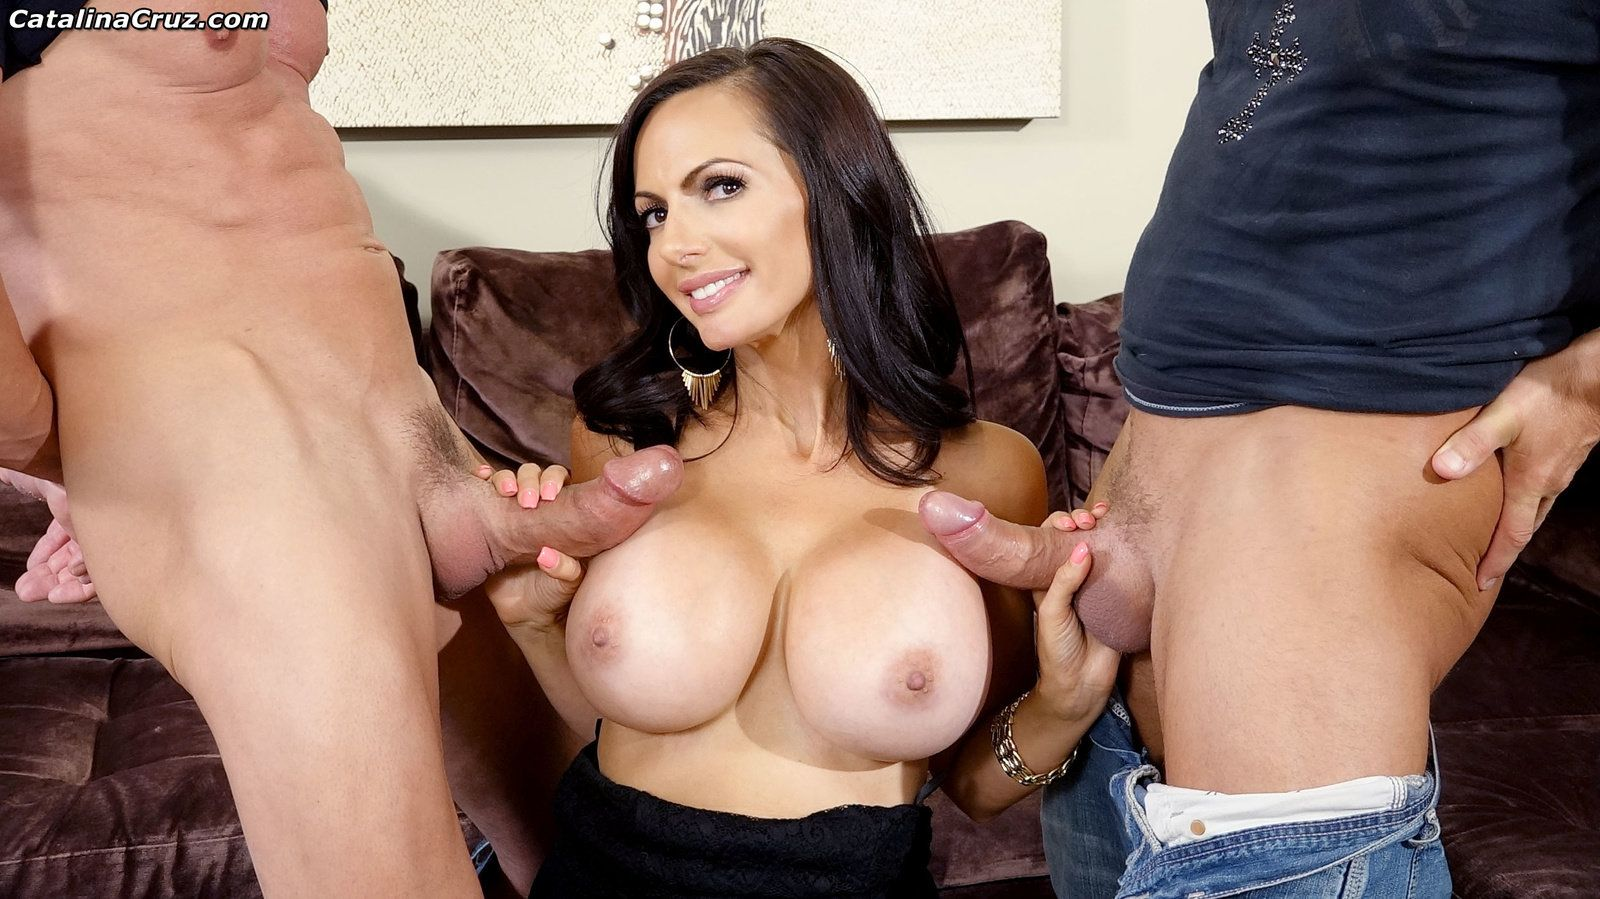 Would catalina cruz anal sex your idea